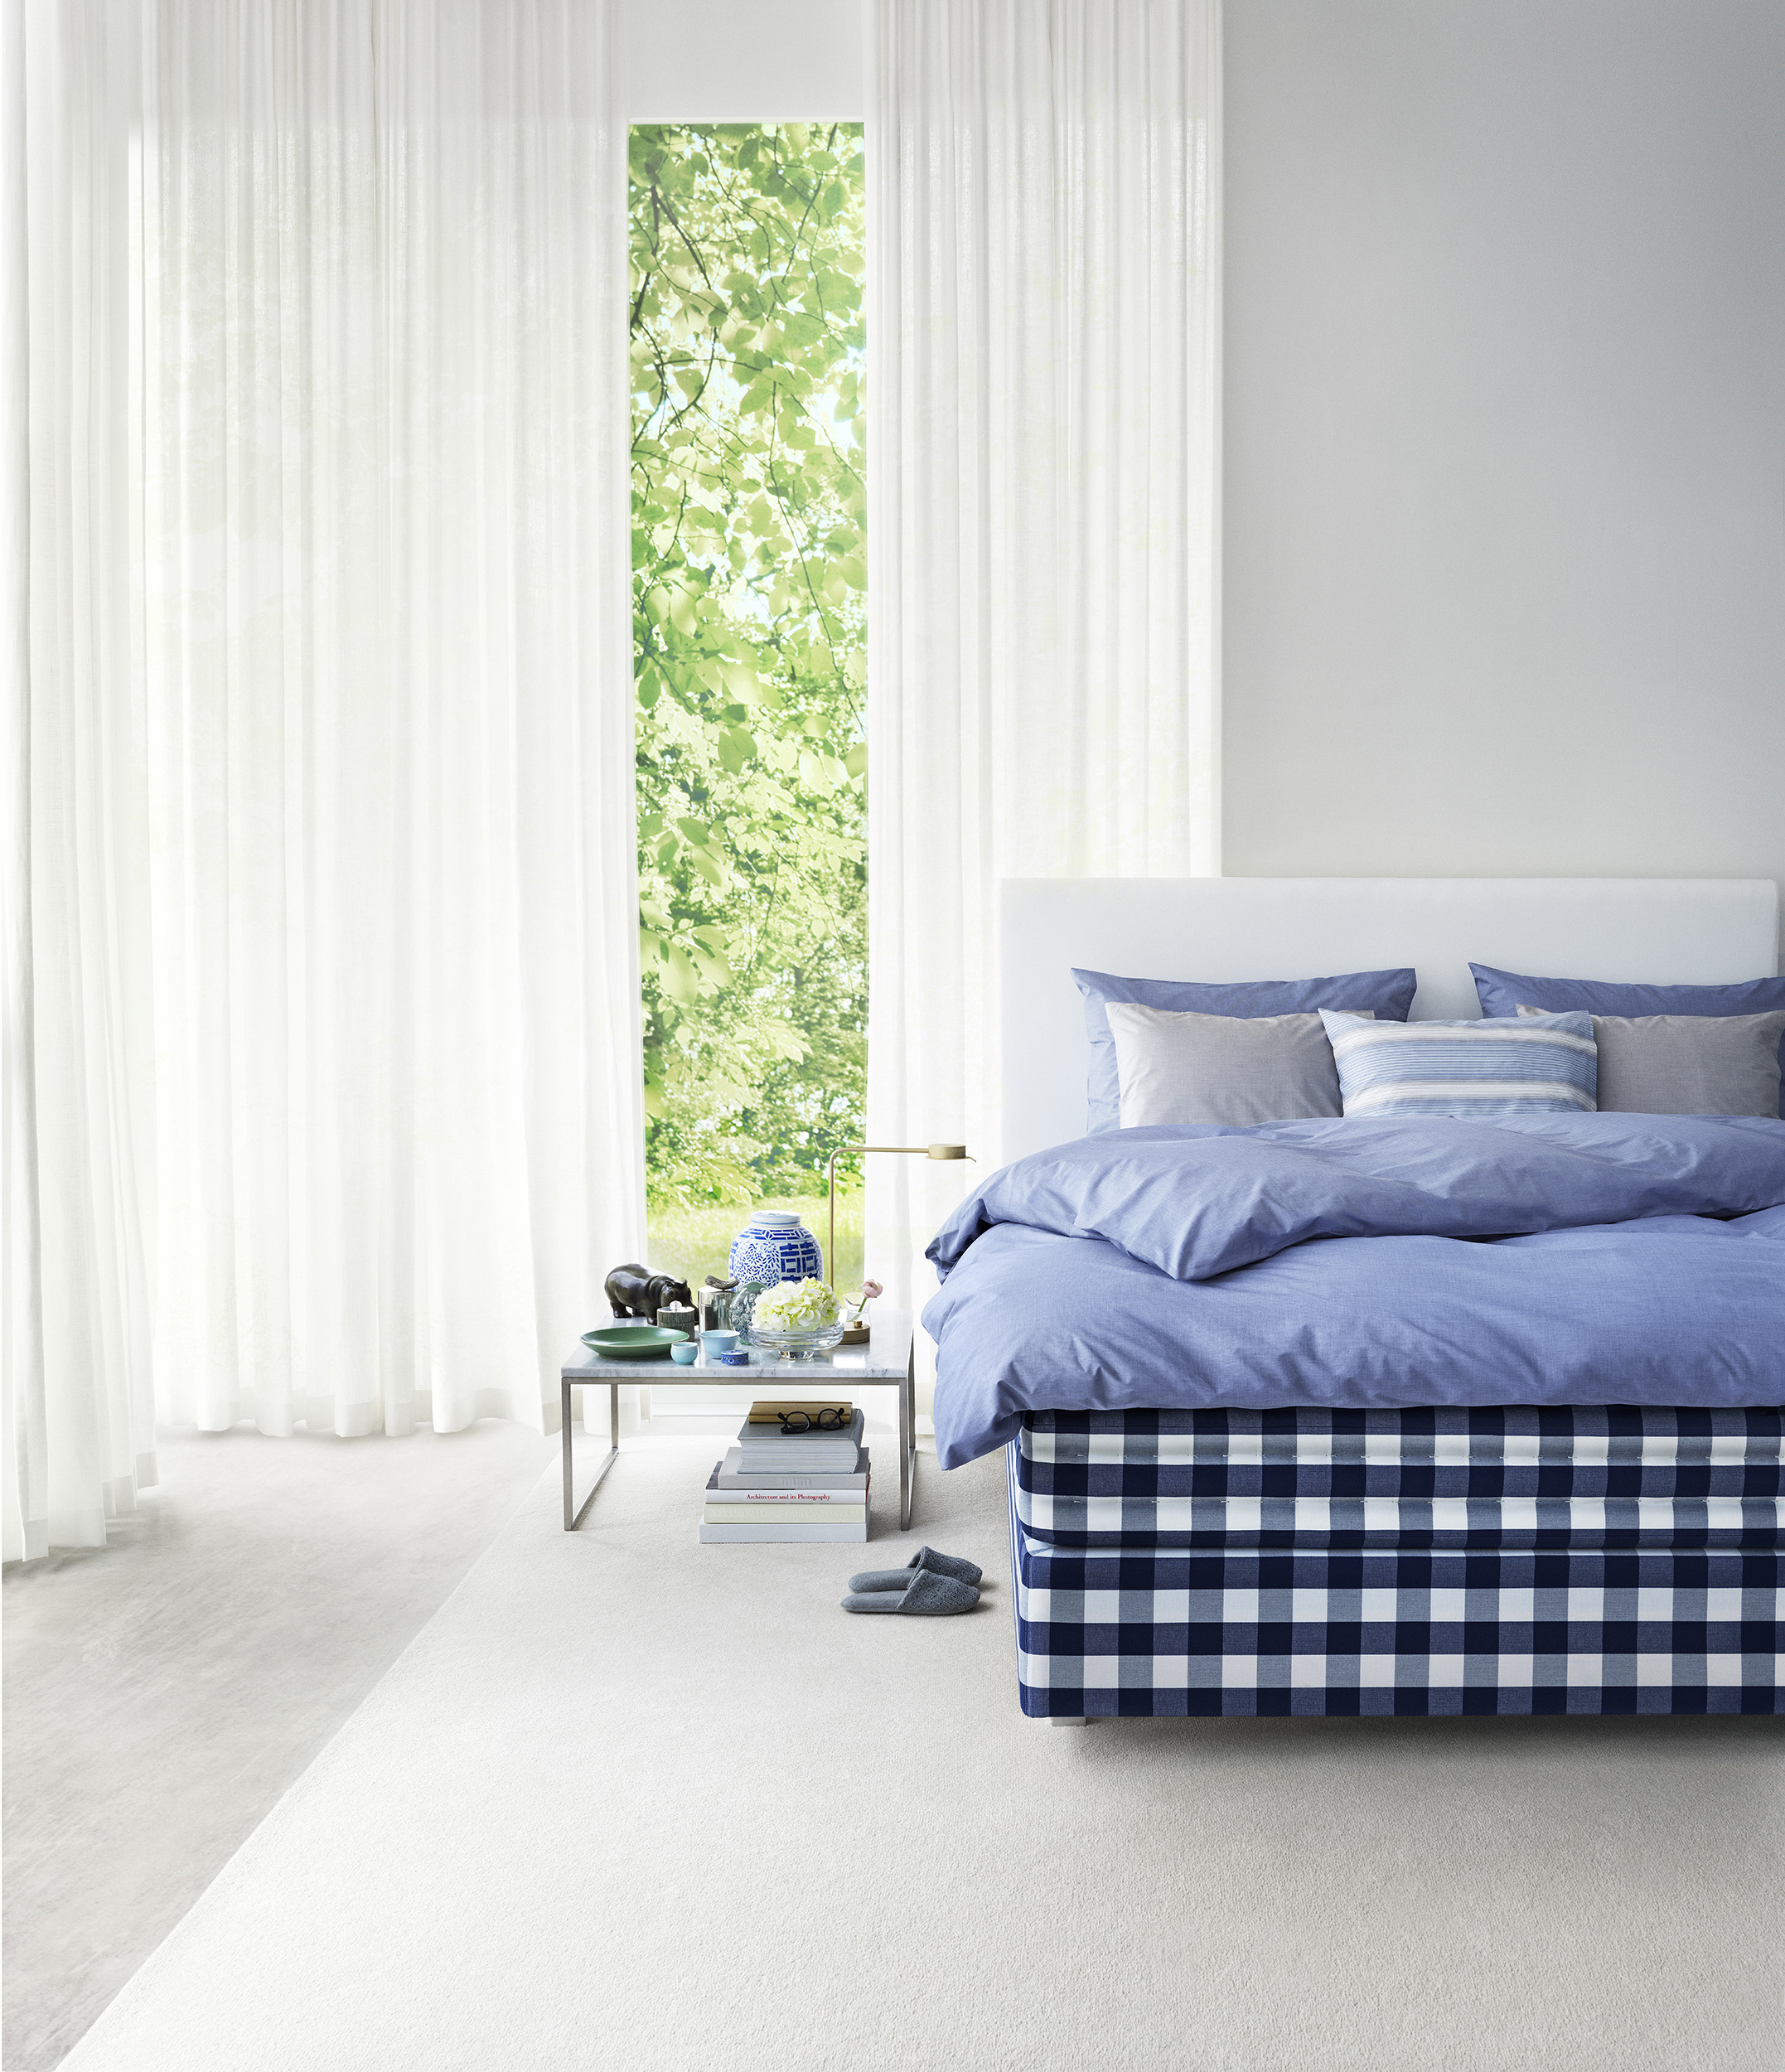 beds_hastens_proferia_proferia_hastens_2015_125-6